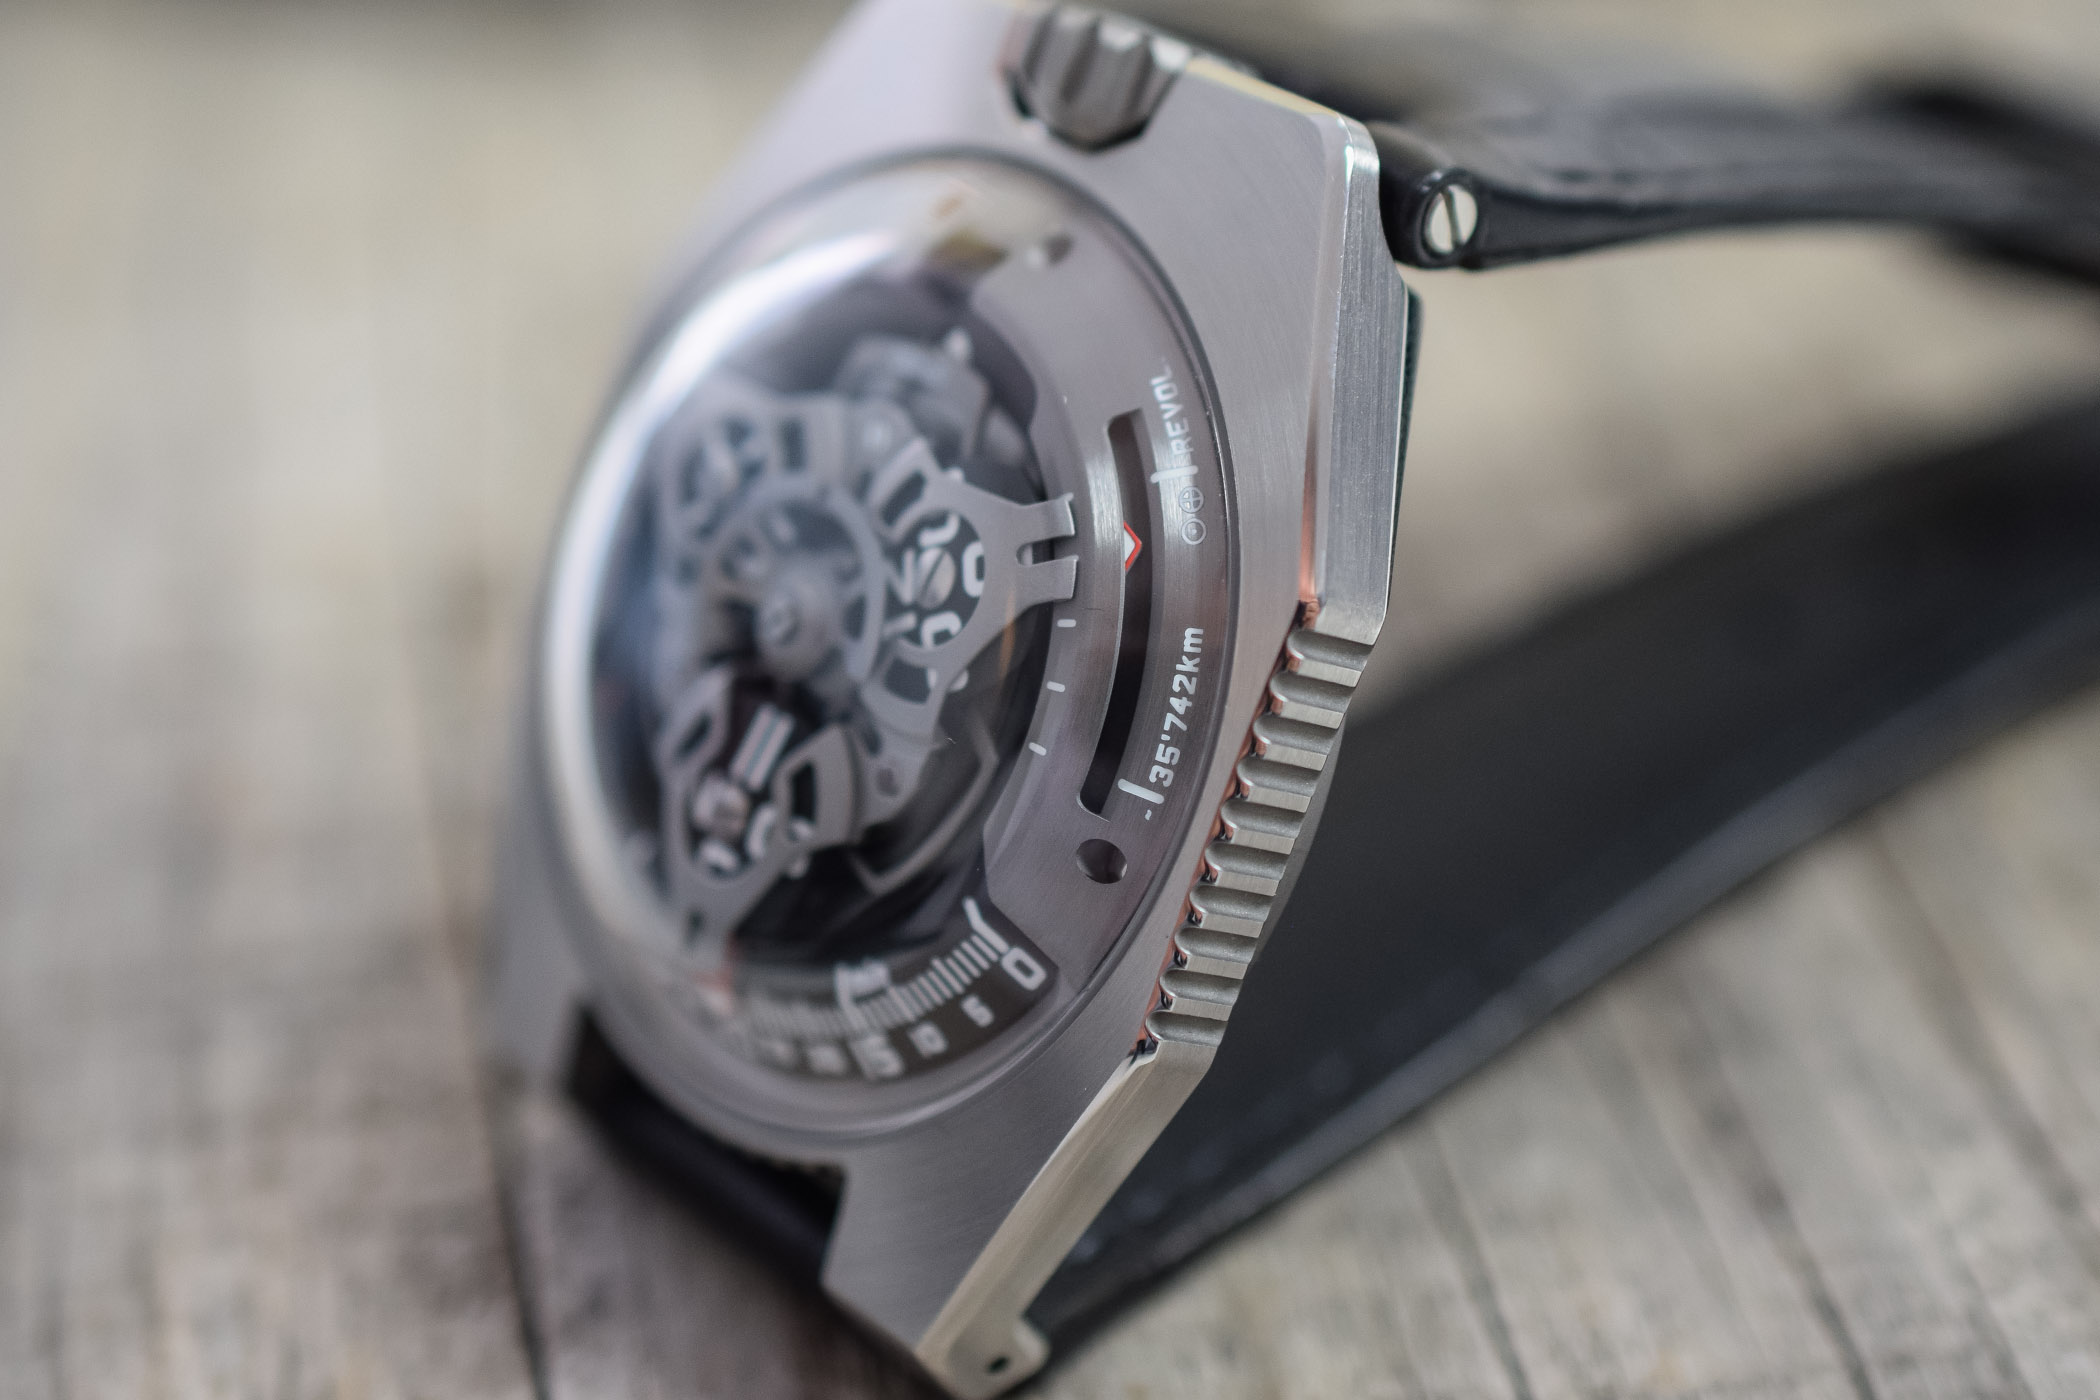 https://k8q7r7a2.stackpathcdn.com/wp-content/uploads/2019/09/URWERK-UR-100-SpaceTime-Review-6.jpg